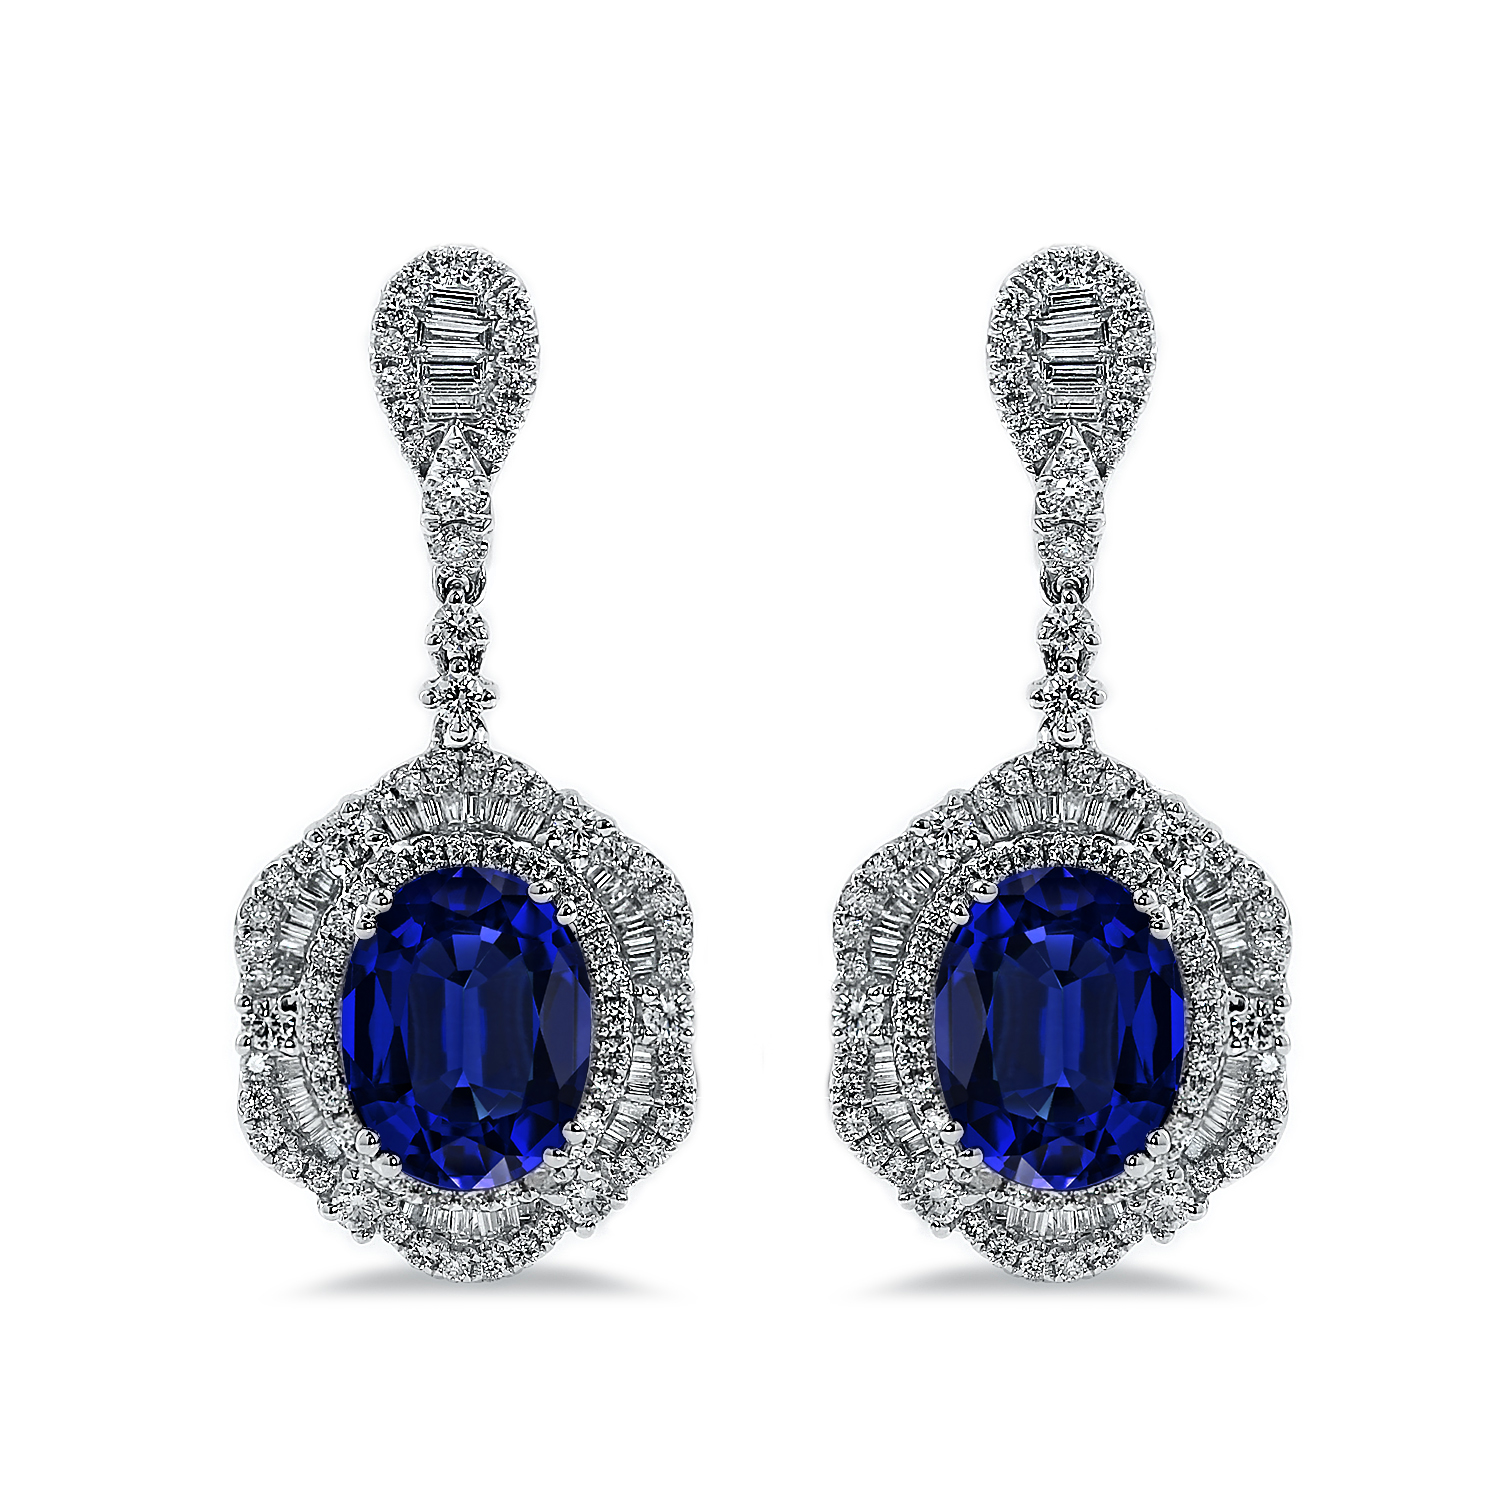 18K White Gold Halo Diamond Drop Earrings with 6 3/8 cttw Oval Blue Sapphire and 2 3/8 cttw Diamonds IGI Certified